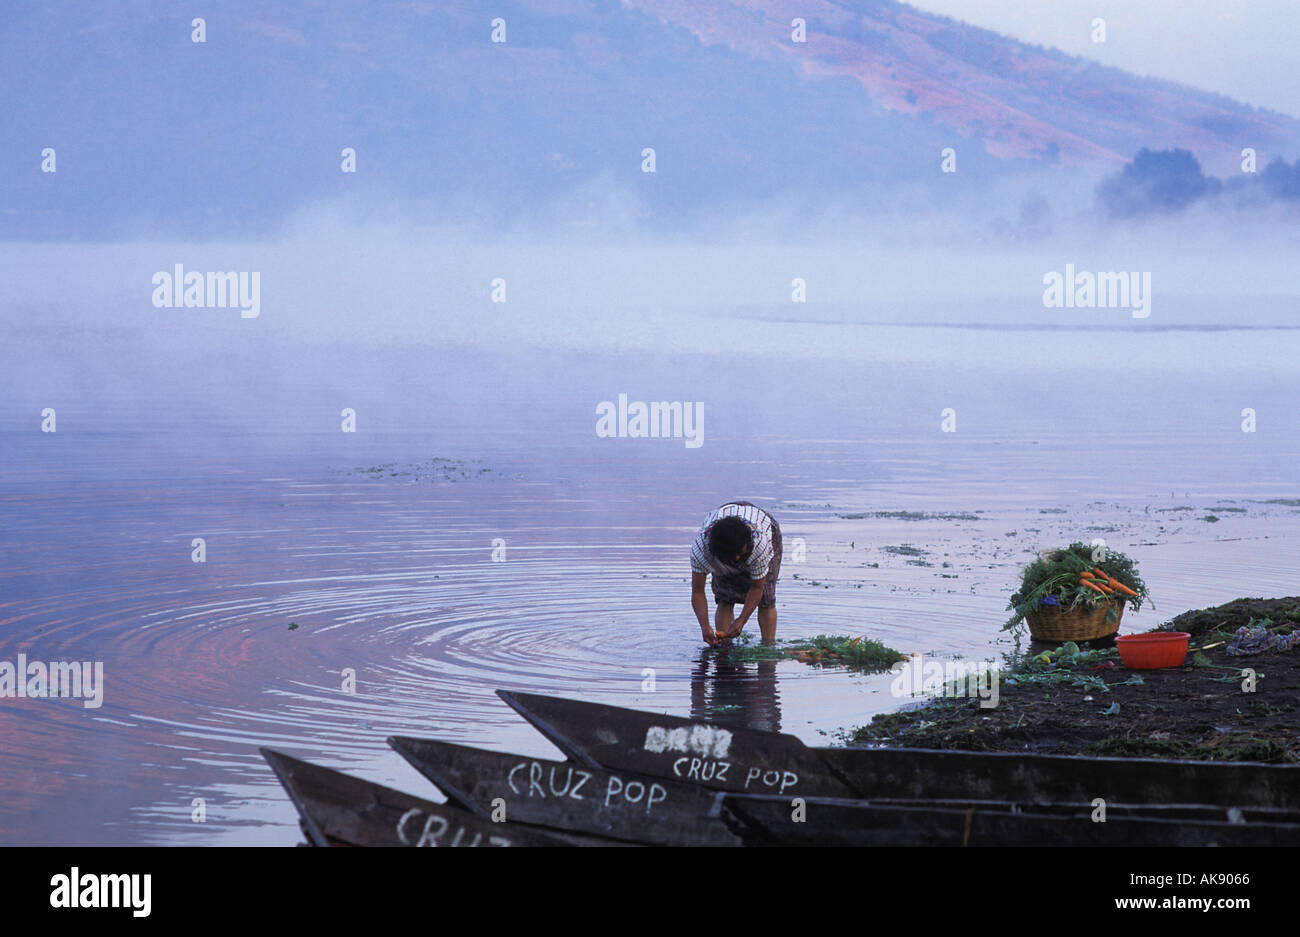 Washing vegetables in the waters of Lake Atitlan Santiago Atitlan Guatemala - Stock Image